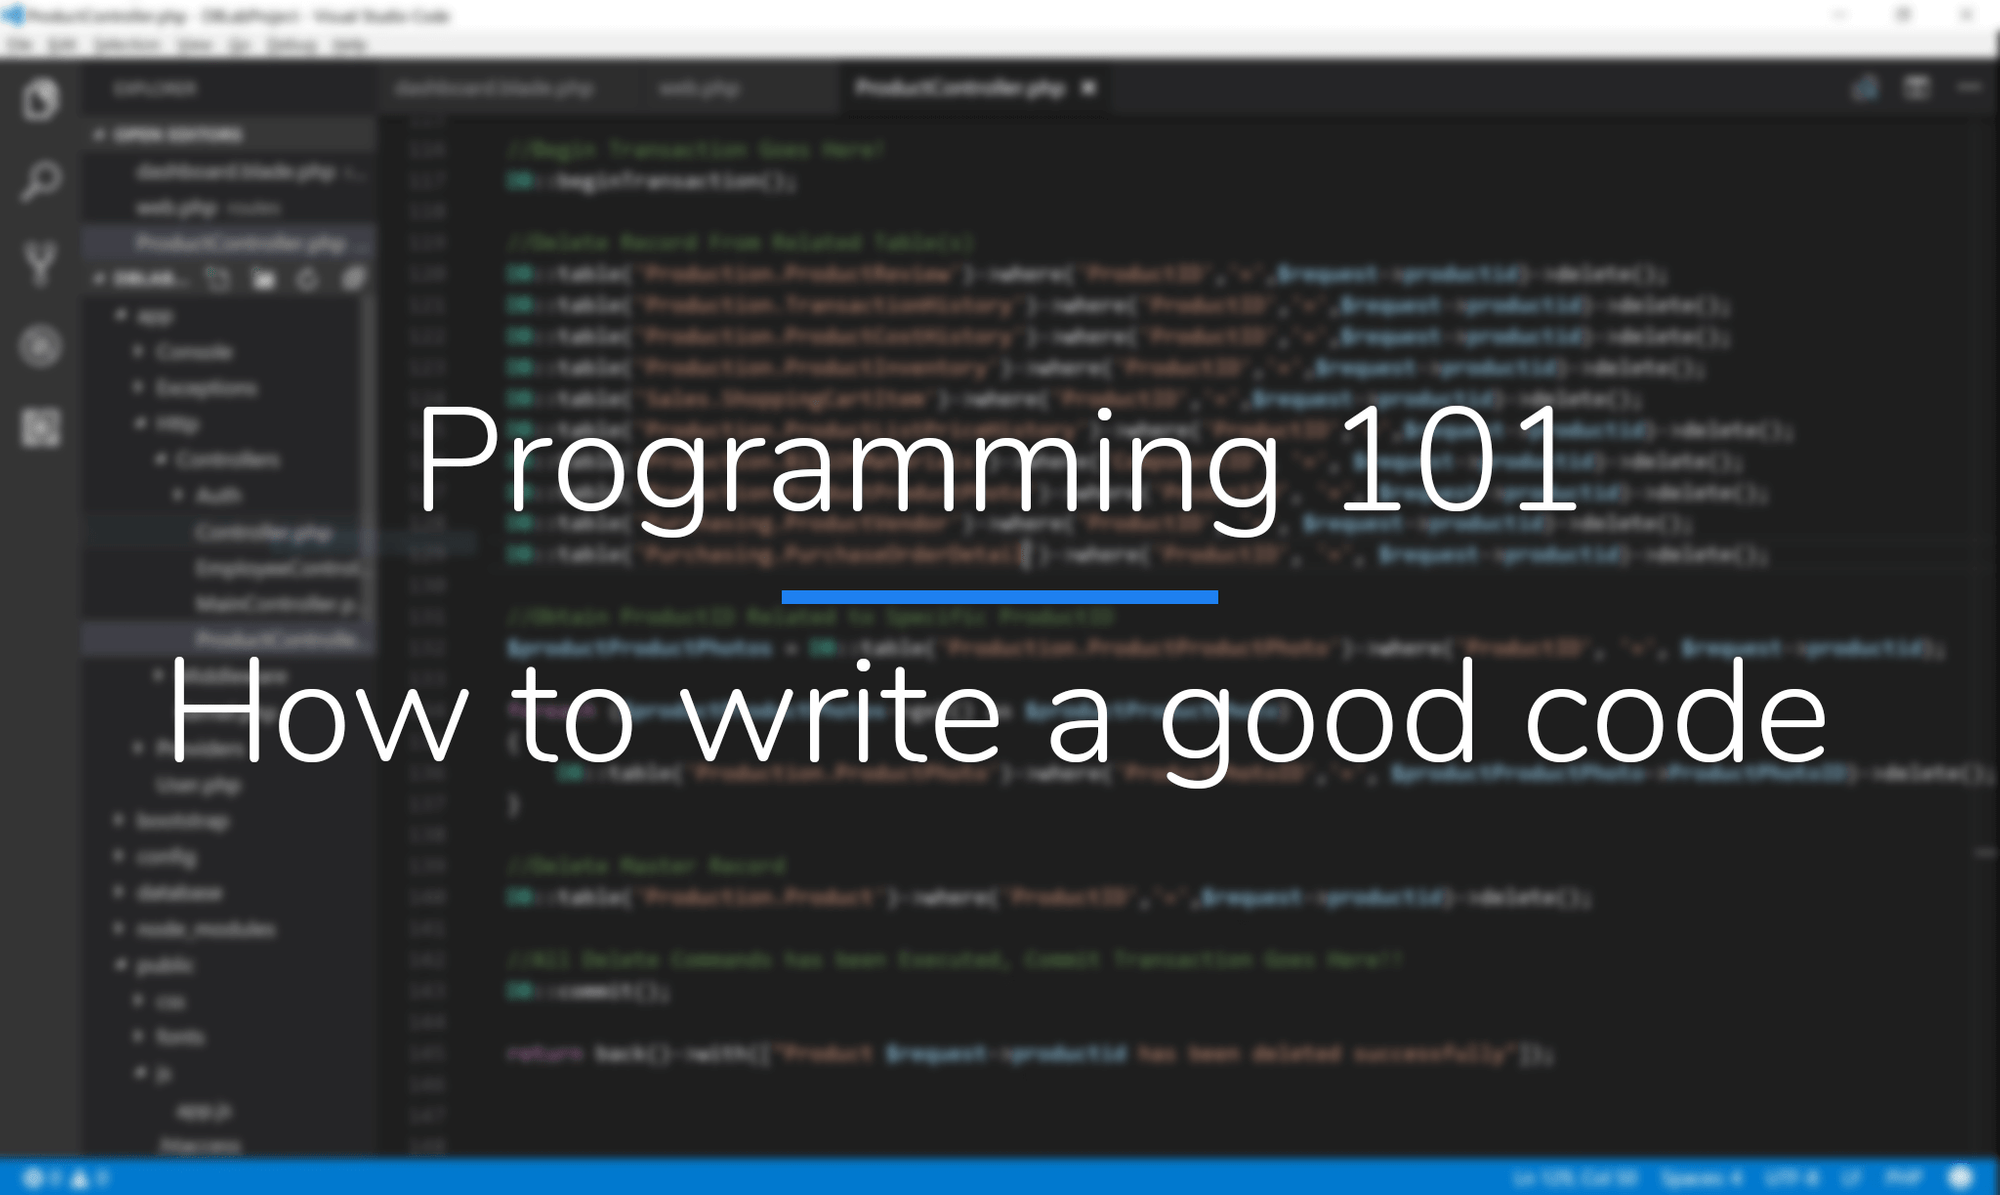 Programming 101 - How to write a good code